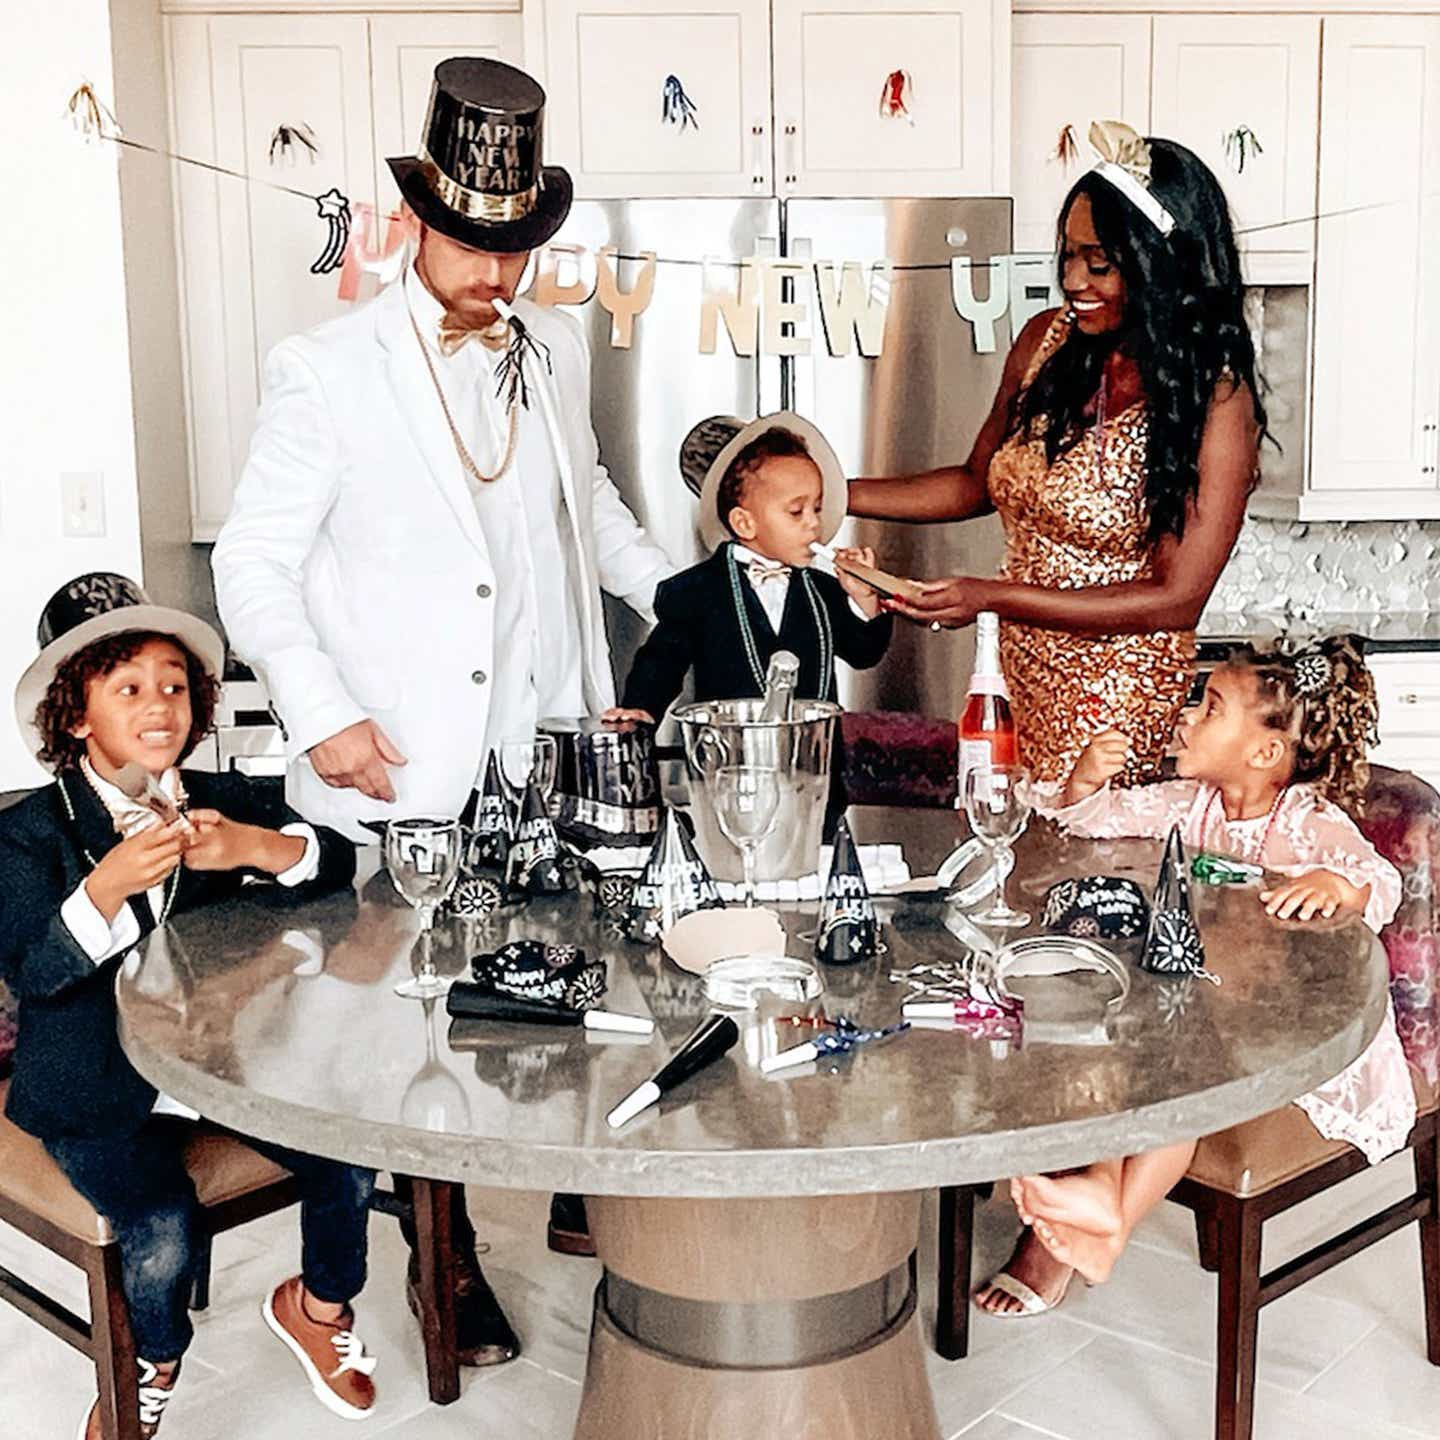 Sally Butan, of The Butan Clan, celebrates New Year's Eve with her family in a Signature Collection villa at New Orleans Resort in Louisiana.